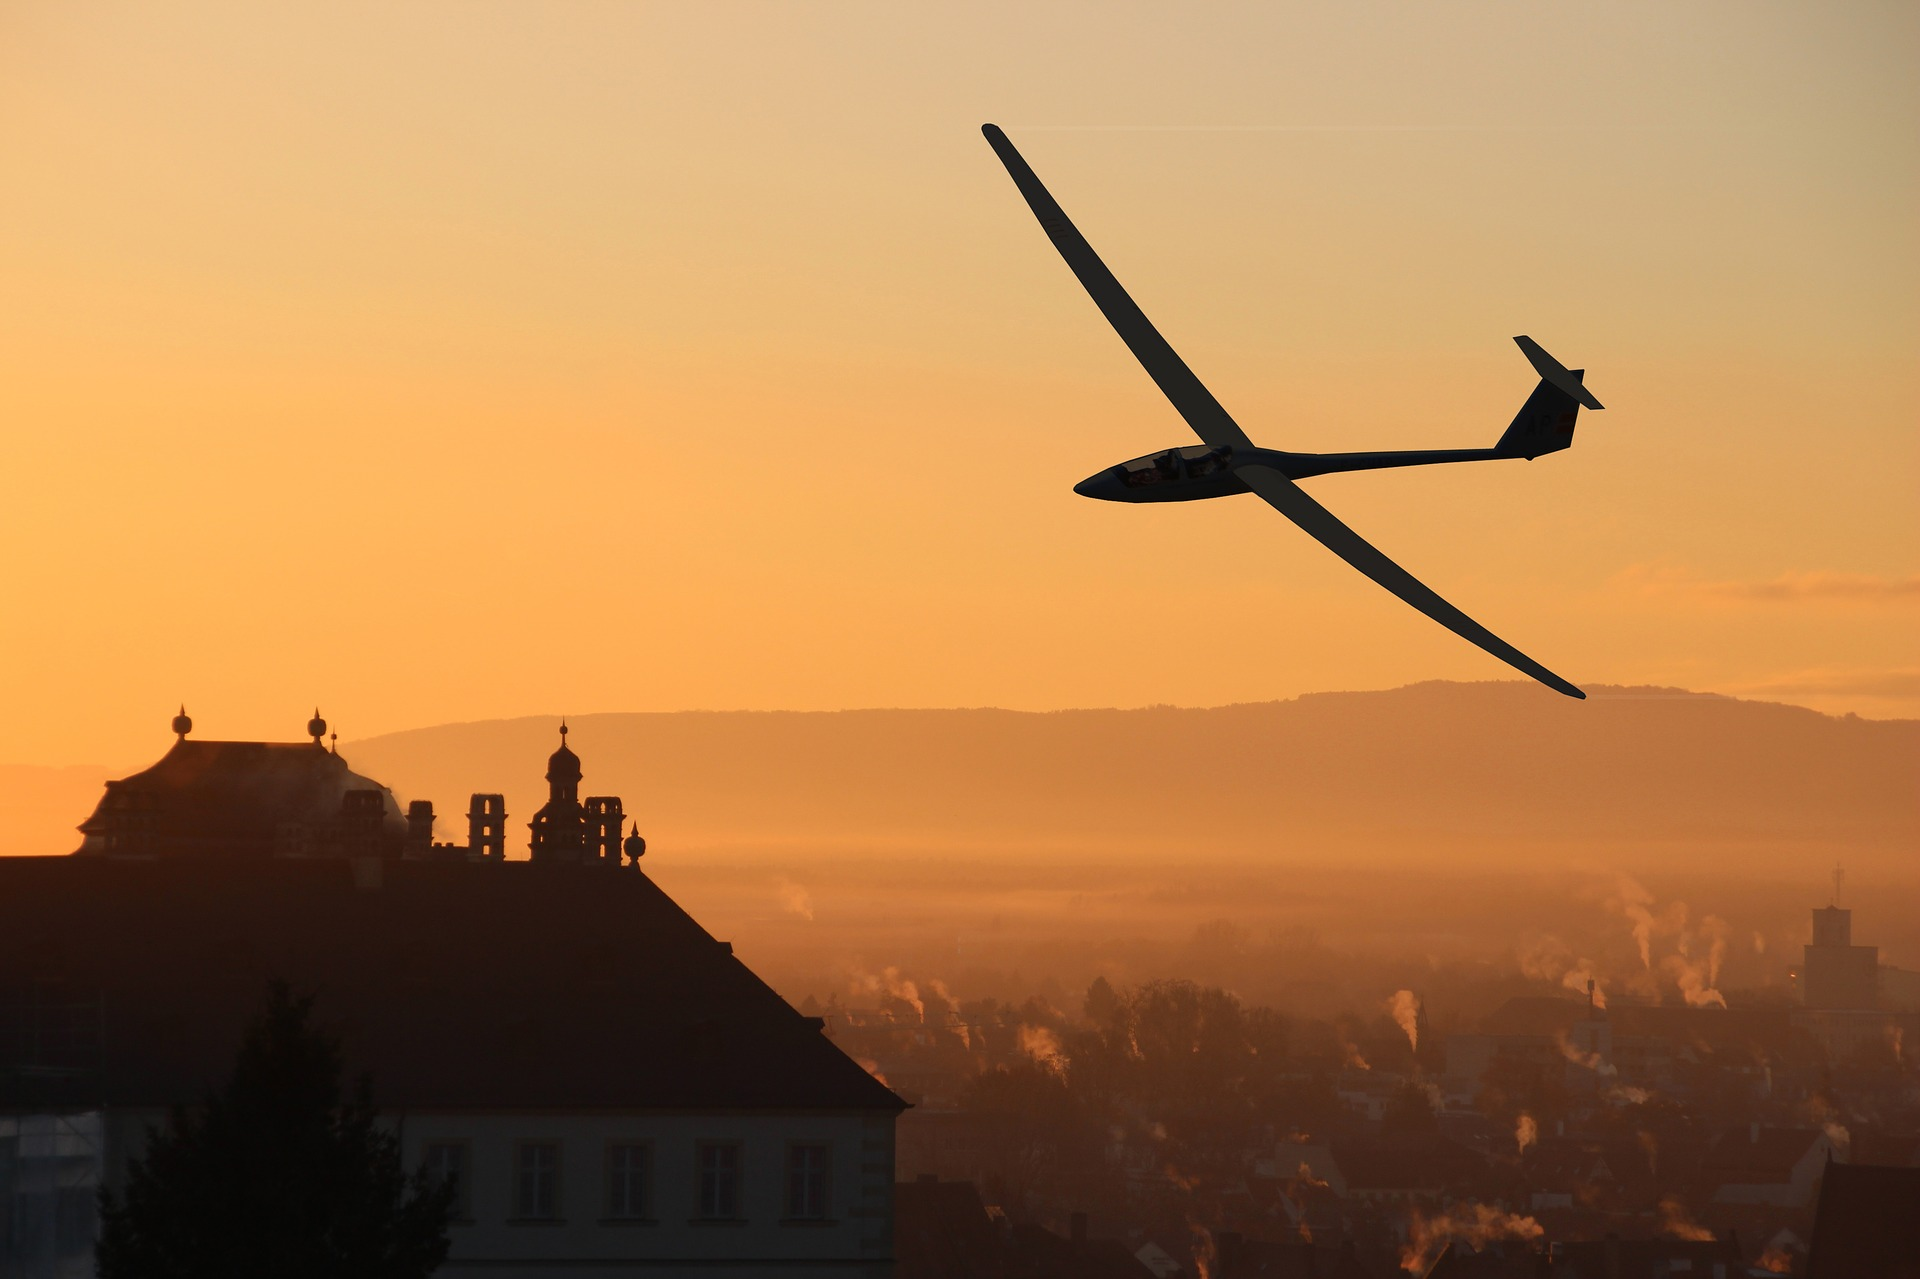 Glider pilots look for updrafts to stay airborne. - Image Credit:  NeuPaddy via Pixabay